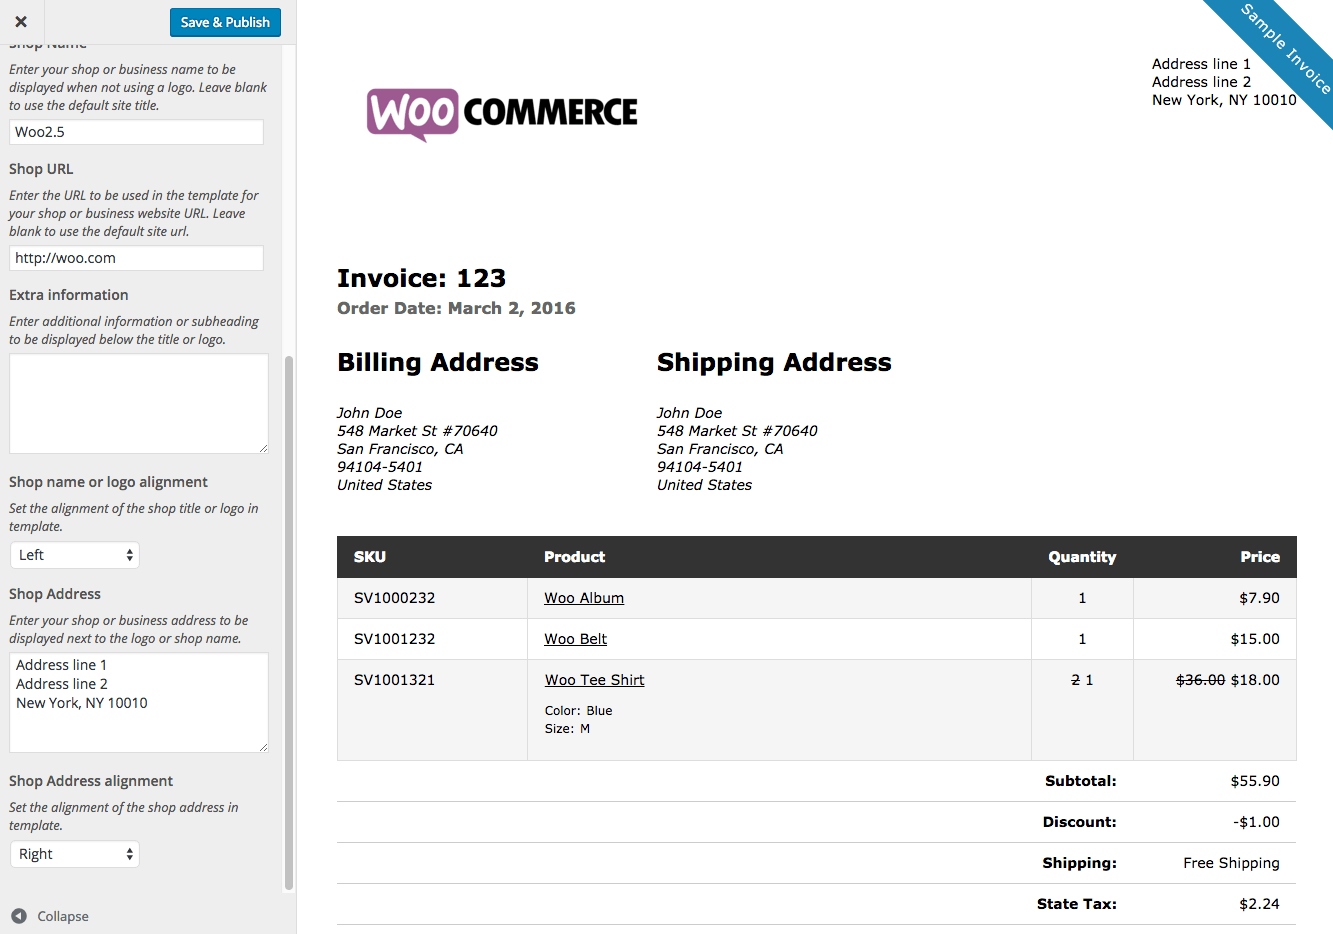 Usdgus  Gorgeous Print Invoices Amp Packing Lists  Woocommerce With Gorgeous Woocommerce Print Invoices  Packing Lists Customizer With Enchanting Dealer Invoice Canada Also Create Free Invoices Online In Addition Retail Invoice Format And English Invoice Template As Well As Purchase Order To Invoice Additionally Chargeback Invoice From Woocommercecom With Usdgus  Gorgeous Print Invoices Amp Packing Lists  Woocommerce With Enchanting Woocommerce Print Invoices  Packing Lists Customizer And Gorgeous Dealer Invoice Canada Also Create Free Invoices Online In Addition Retail Invoice Format From Woocommercecom